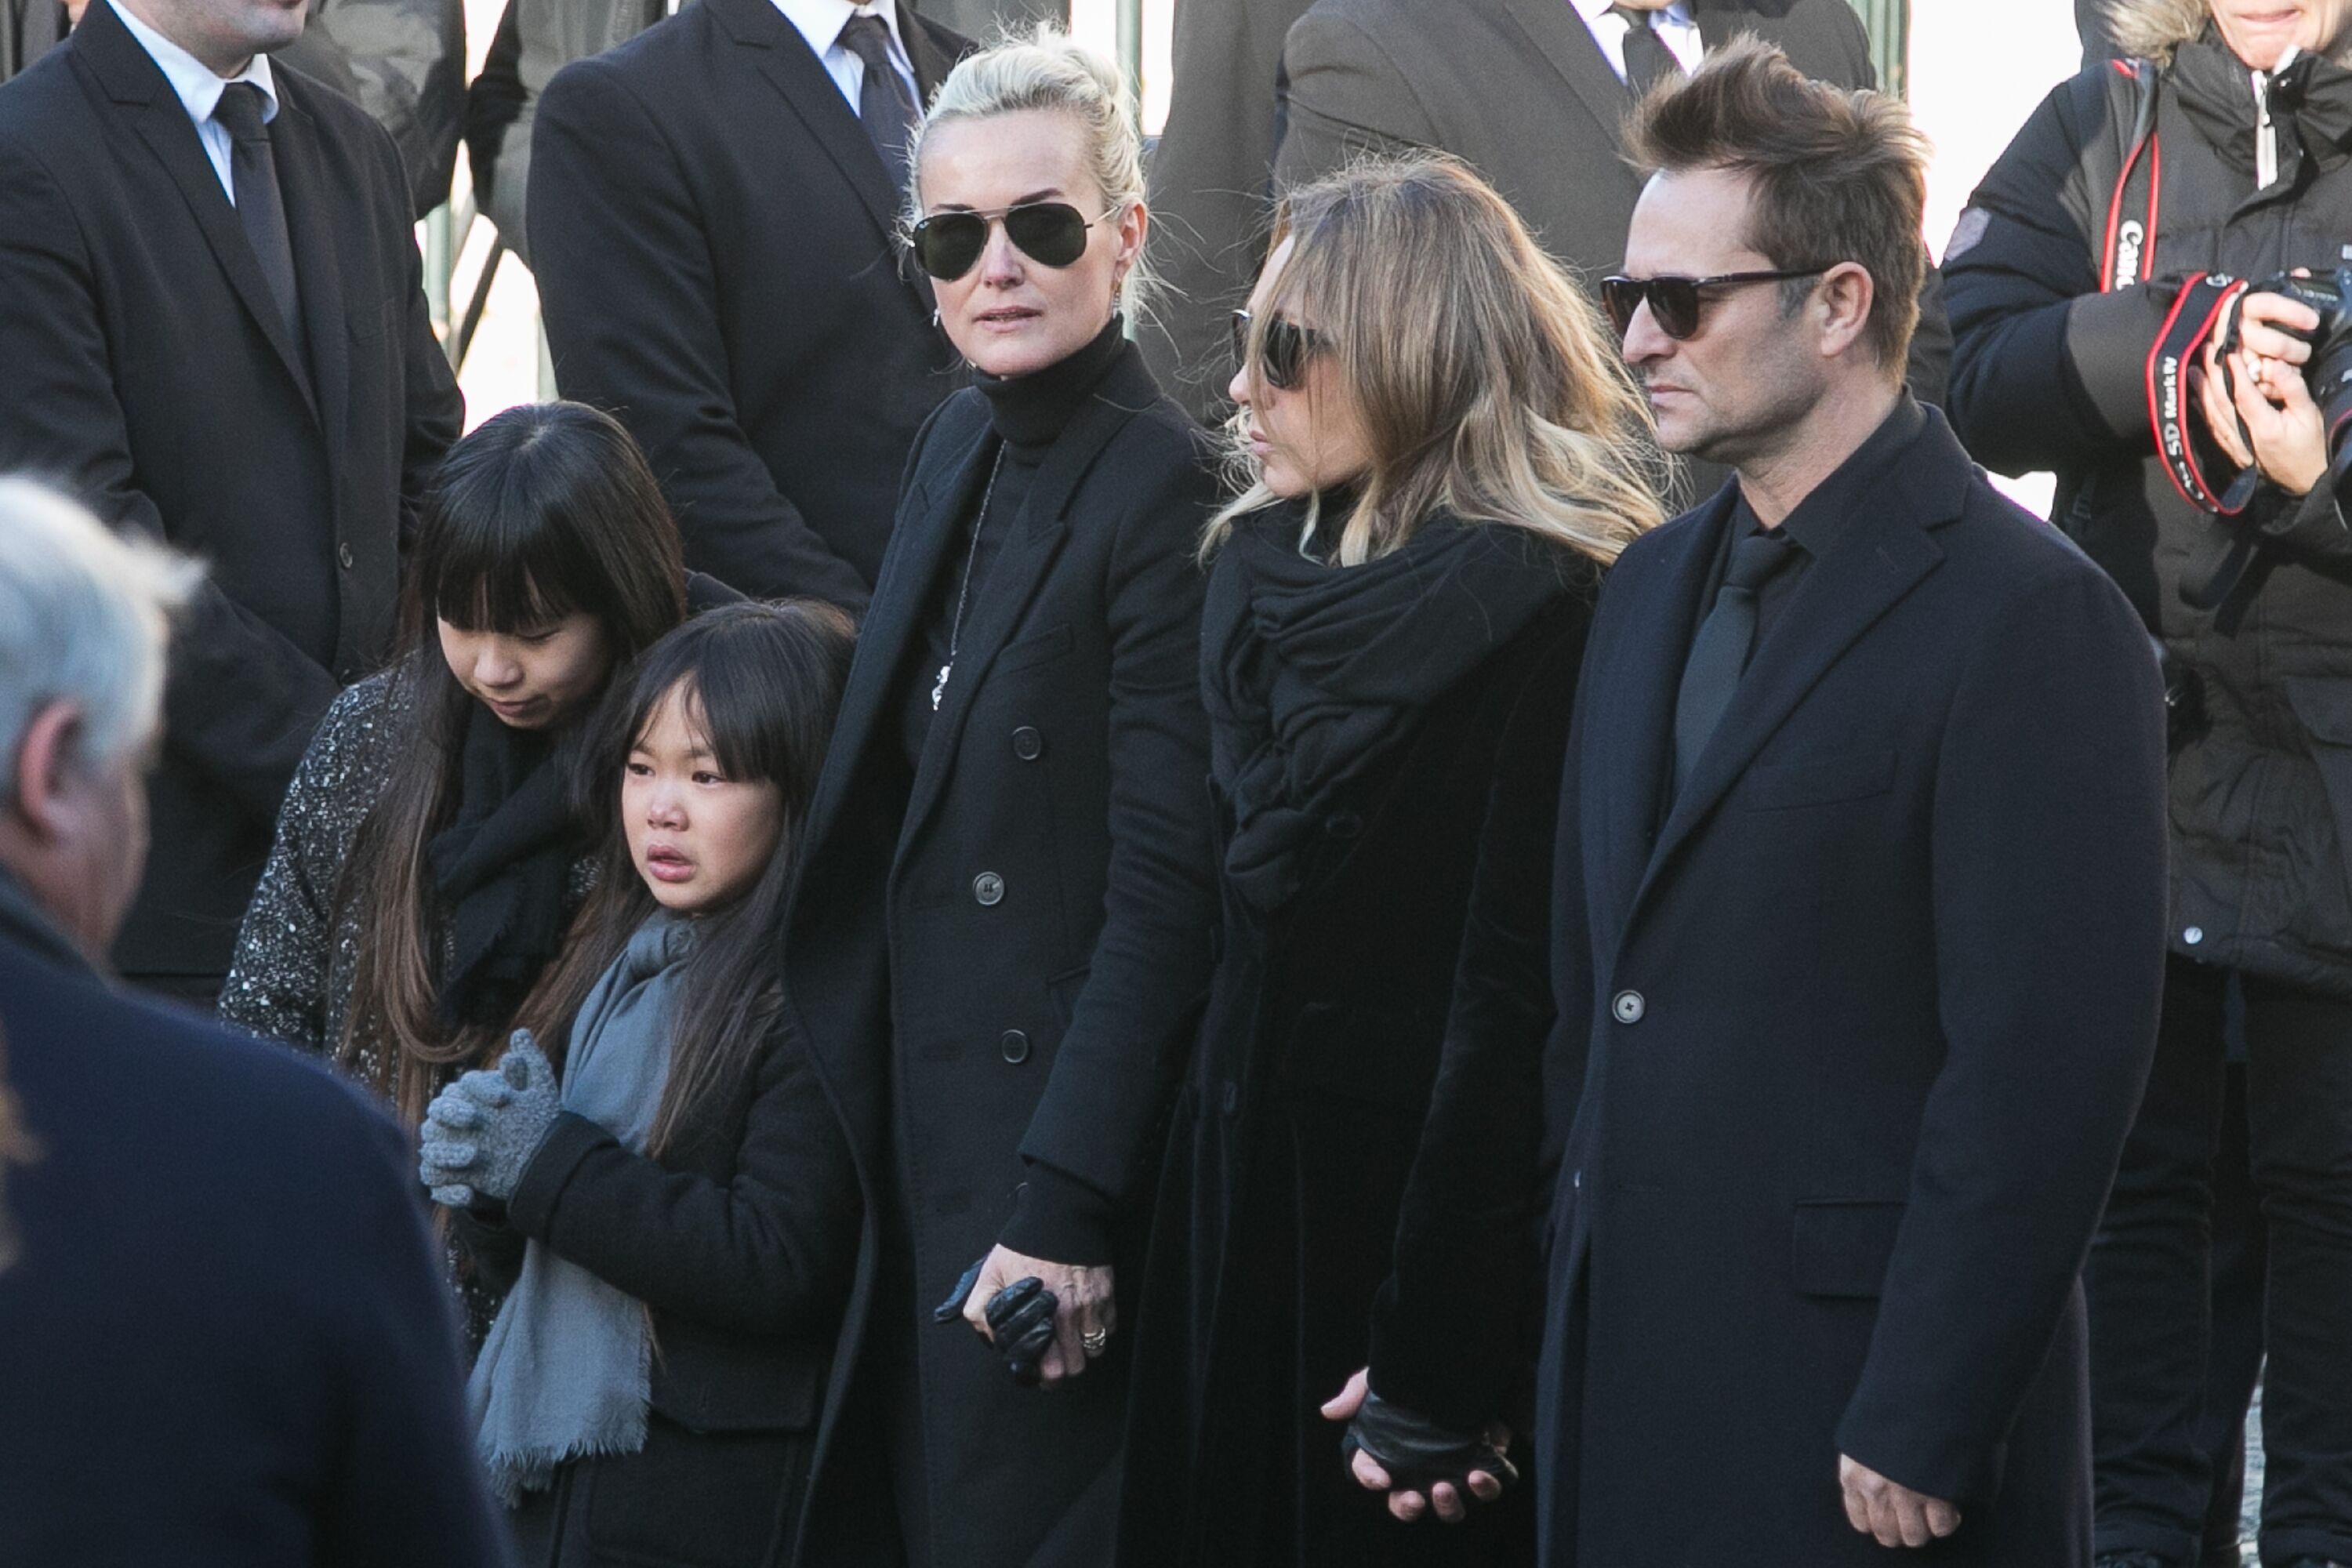 Jade, Joy, Laeticia Hallyday, Laura Smet et David Hallyday sont vus lors des funérailles de Johnny Hallyday à l'église De La Madeleine à Paris, France. | Photo : Getty Images